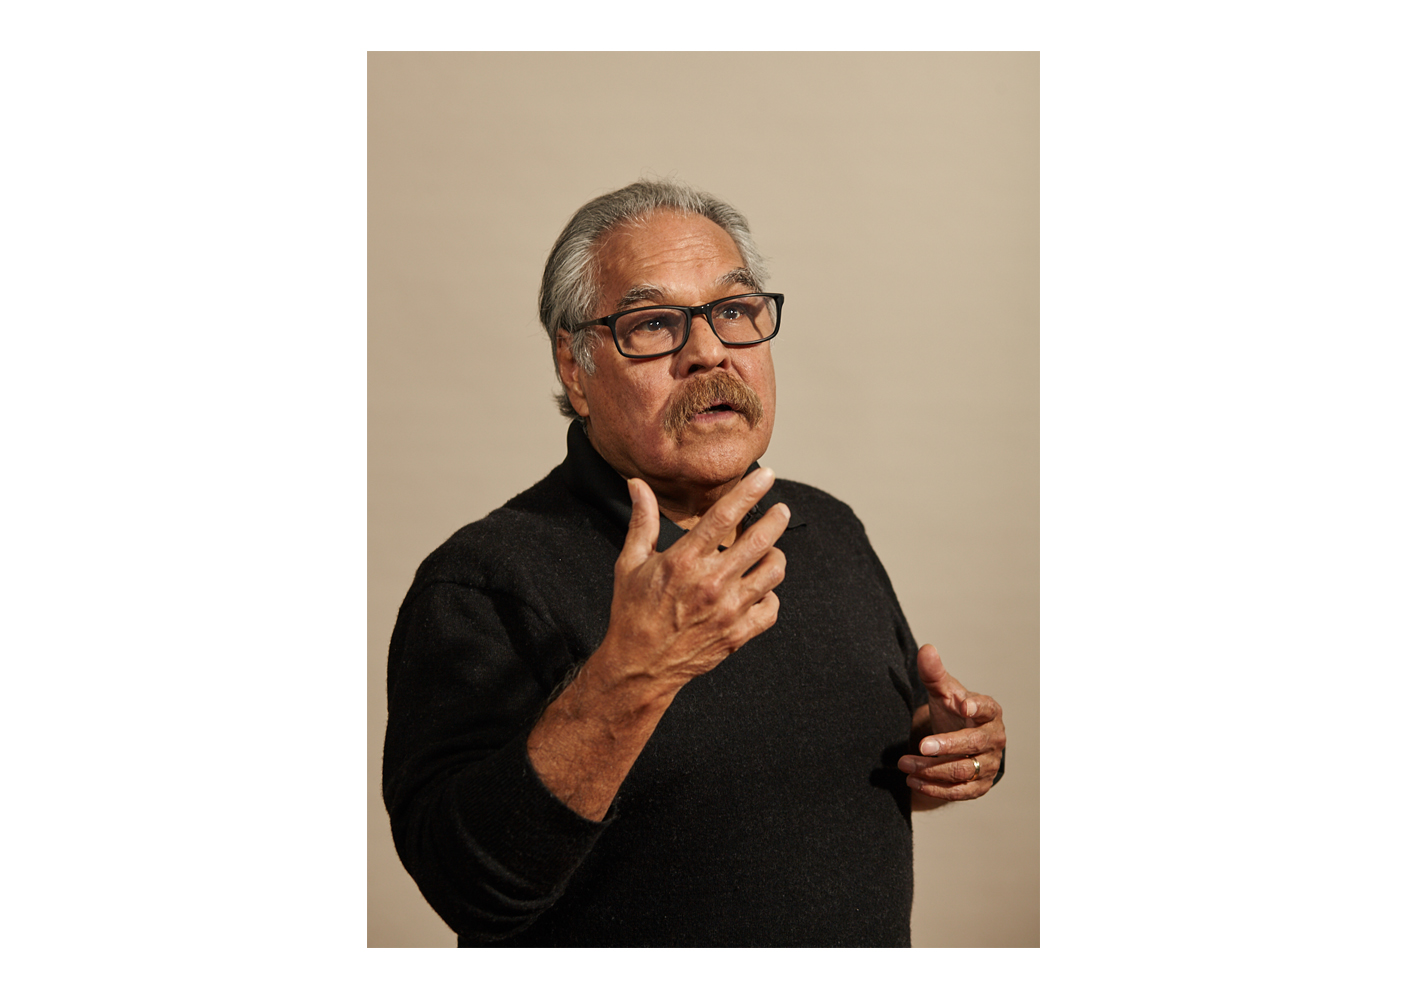 Luis Valdez, photographed for the New York Times in Los Angeles. Brad Torchia is an LA-based editorial and commercial photographer.